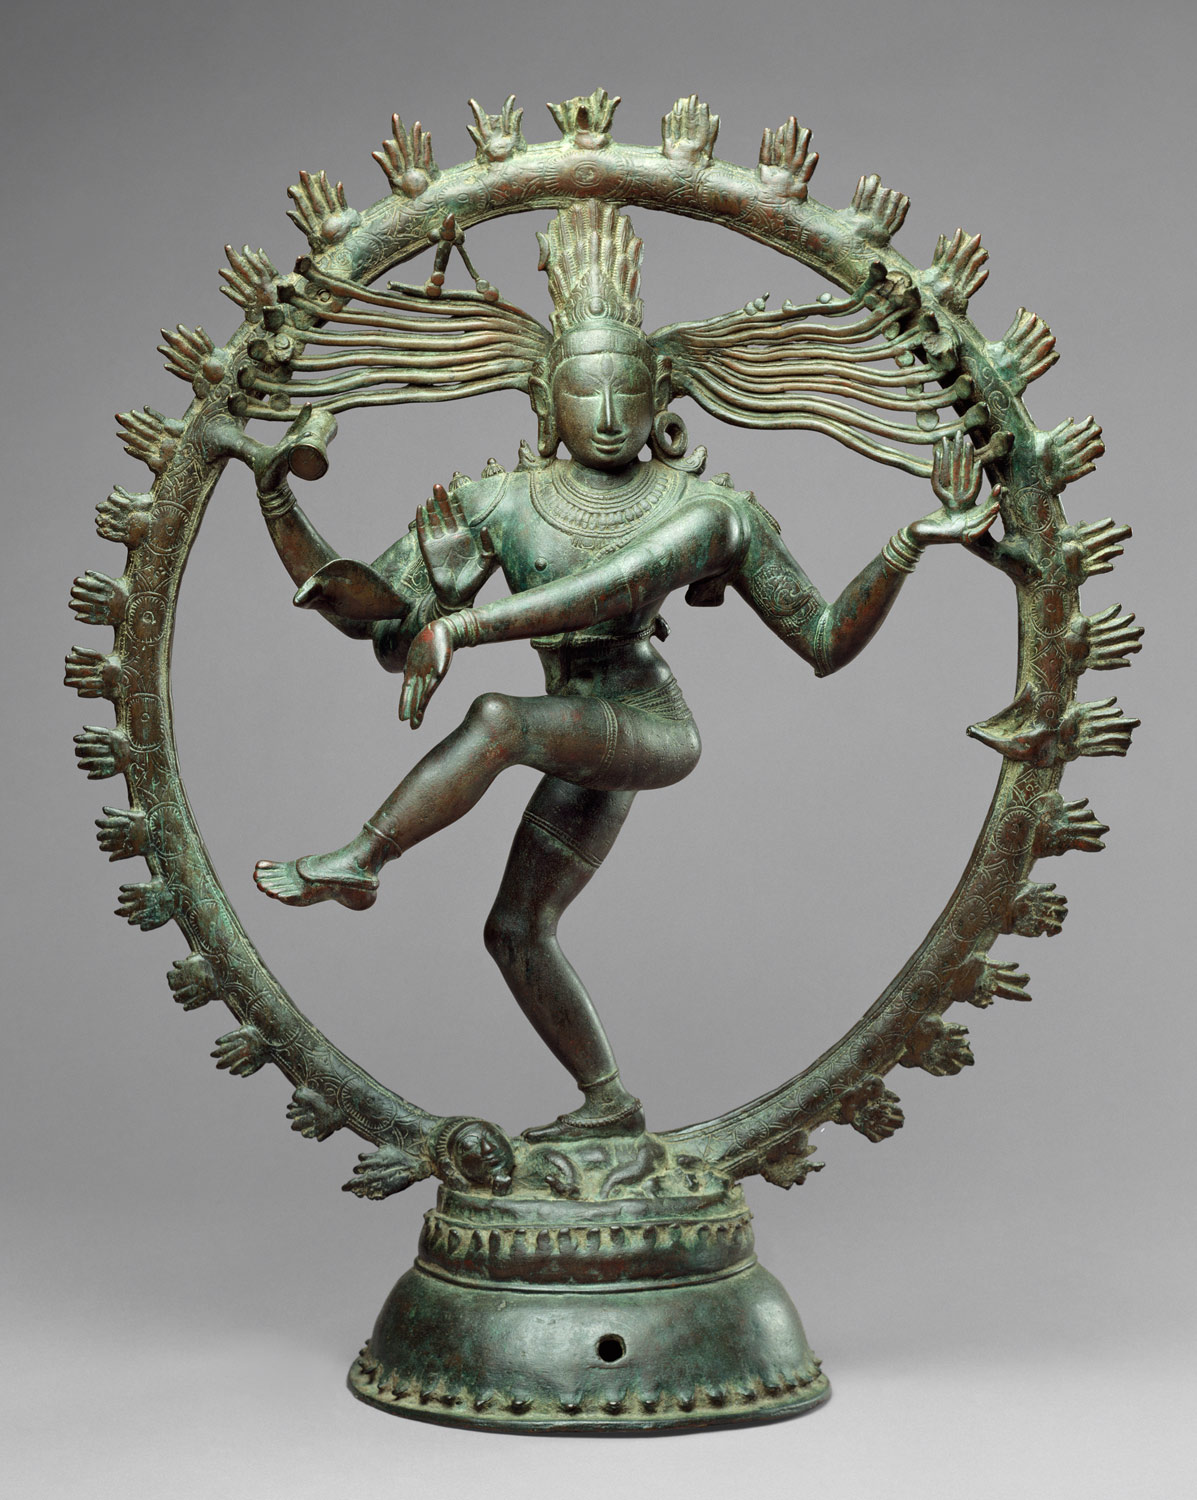 South Asian Art And Culture  Essay  Heilbrunn Timeline Of Art   Shiva As Lord Of The Dance Nataraja  Essay On English Subject also Discount For Custom Writing  Review Of Related Literature For Online Ordering System